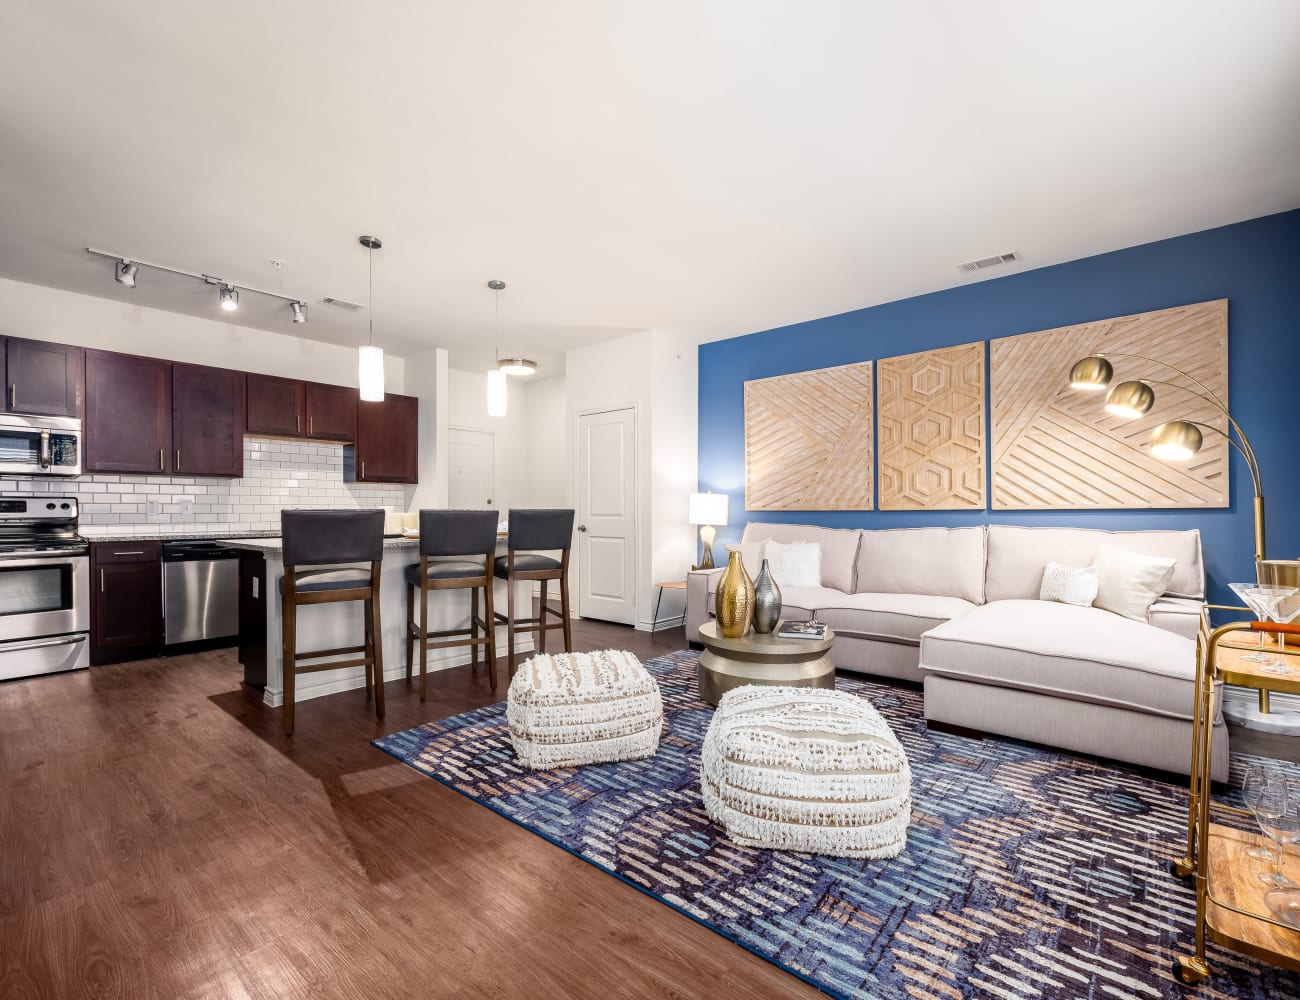 Open-concept layout with hardwood floors at 4 Corners Apartments in Frisco, Texas